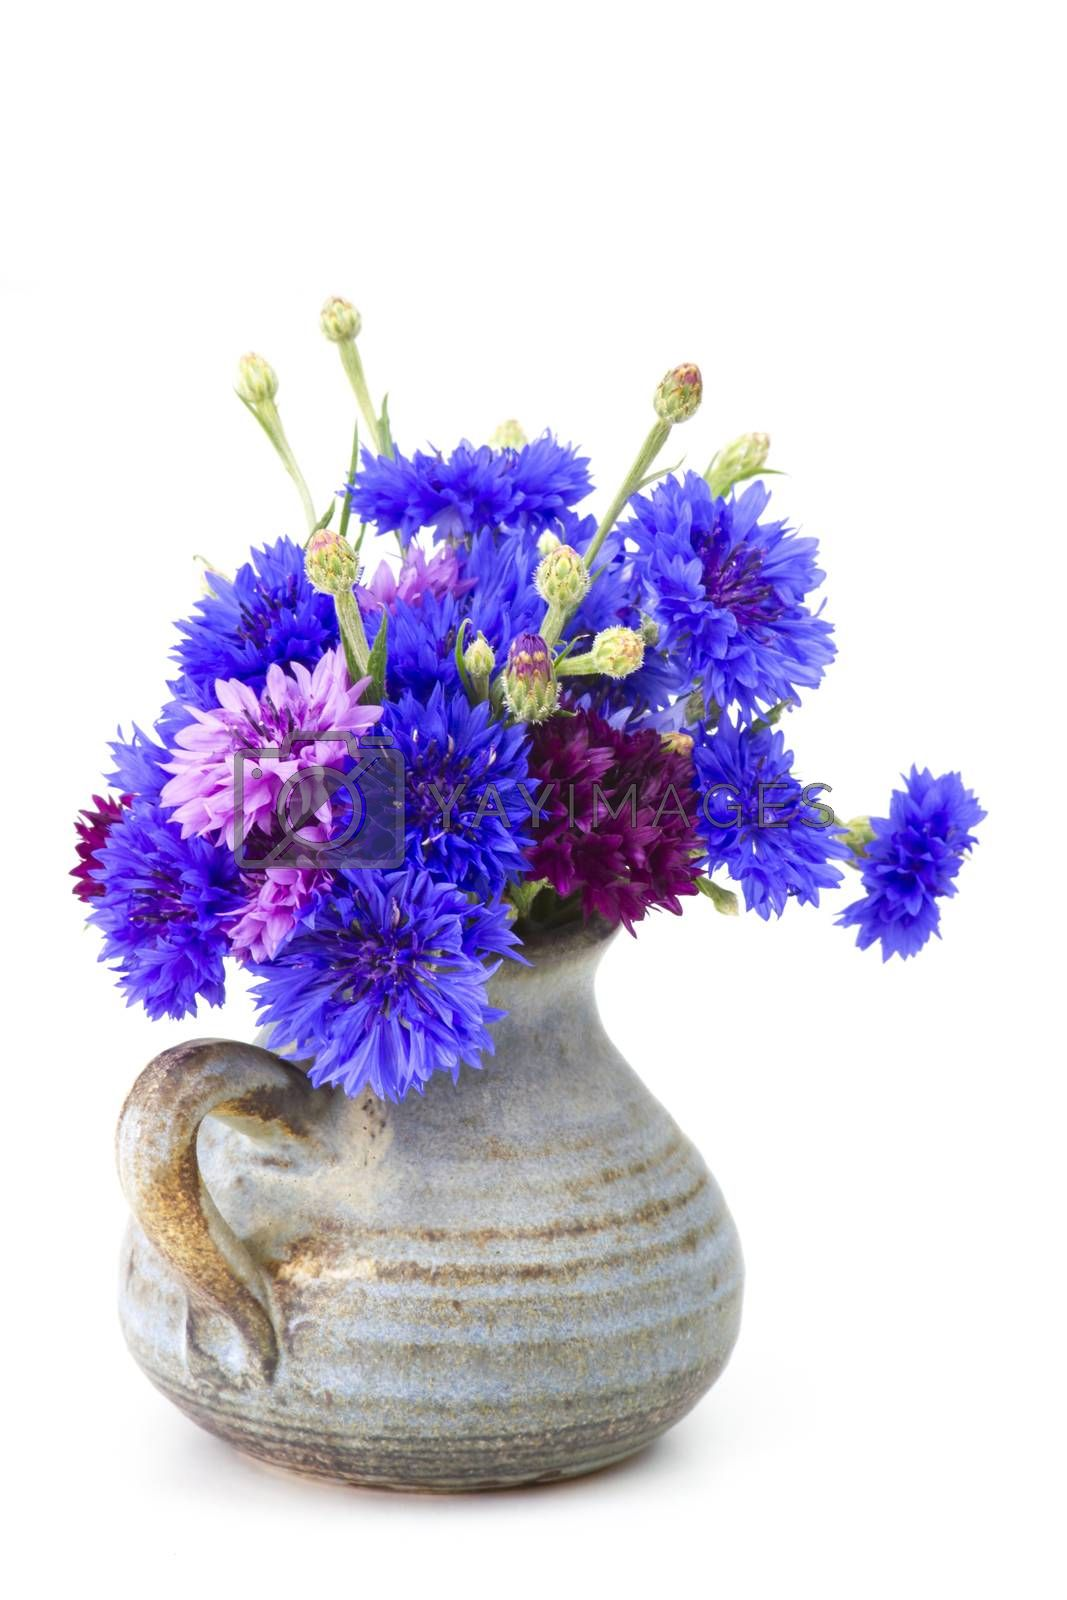 bouquet of cornflowers on white background